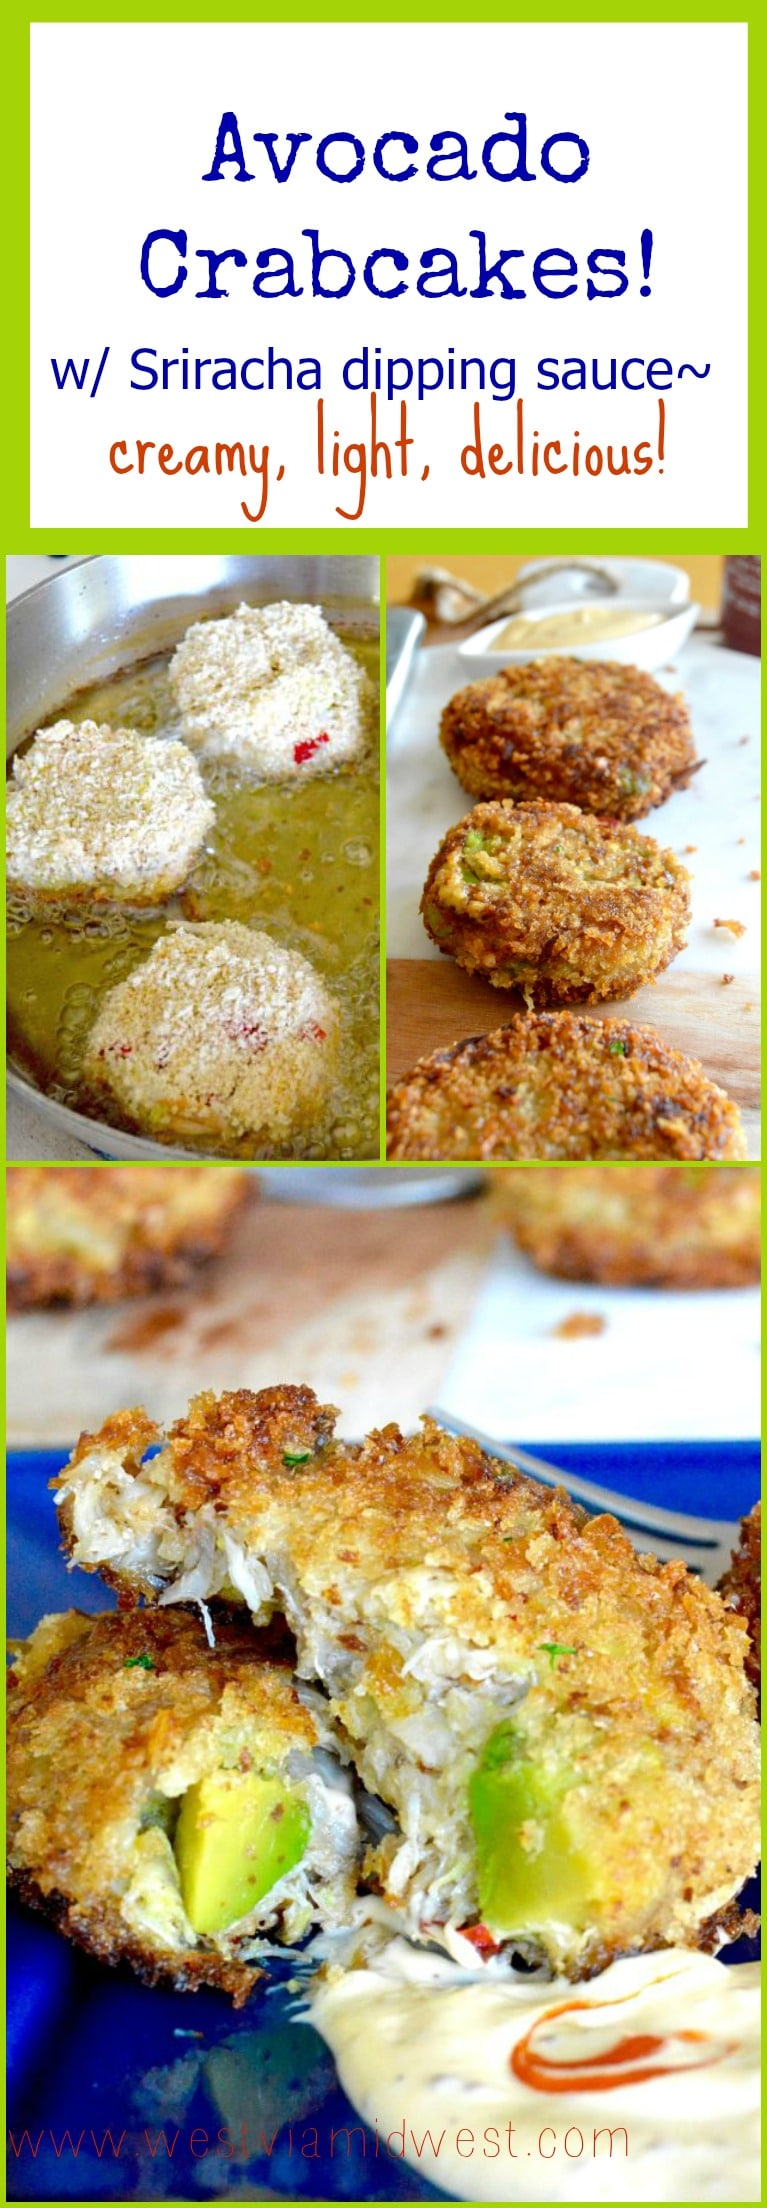 Avocado Crab Cakes sends an ordinary crab cake right off the charts! This recipe has big chunks of crab mixed with cubes of fresh avocado that gives a creamy, full flavor bite! Dip it in a Sriracha dipping sauce for added zing!